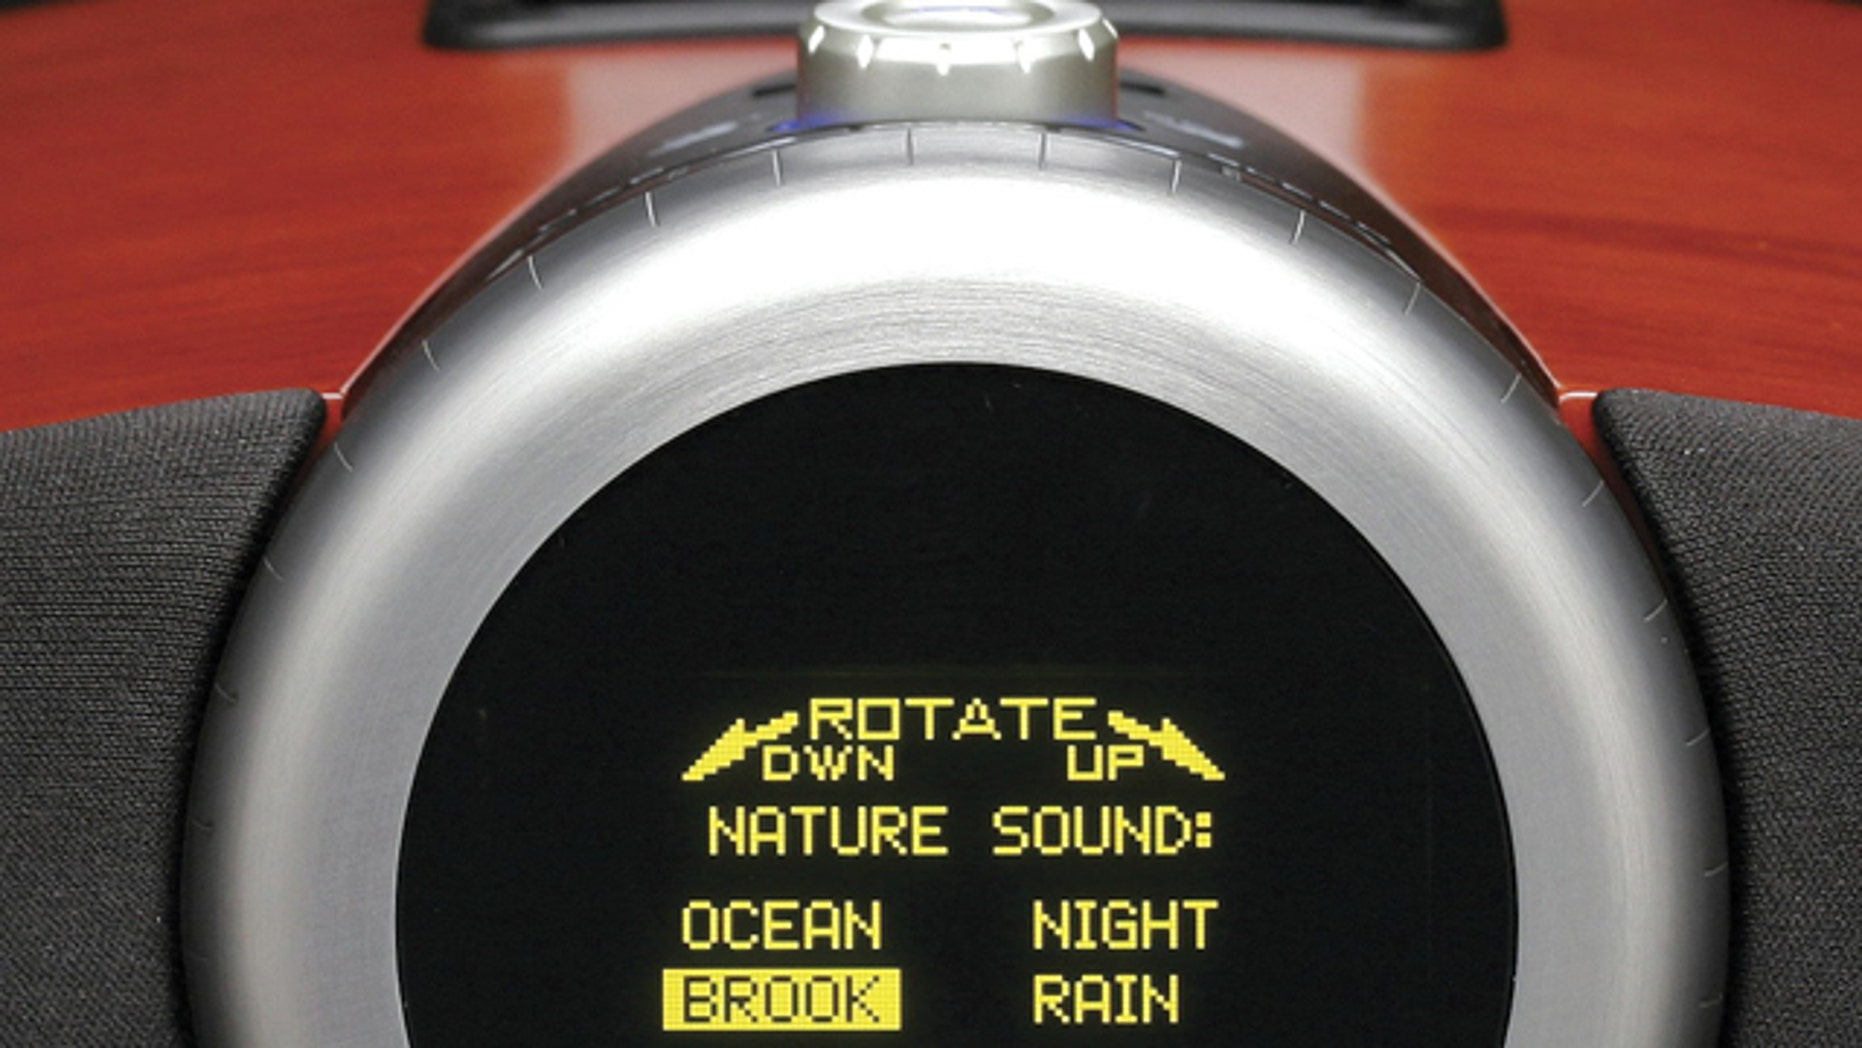 the Acoustic Research ART1 Clock Radio has an advanced OLED display. The top of the case is touch sensitive, making it easy to turn on various sound themes to wake you up.